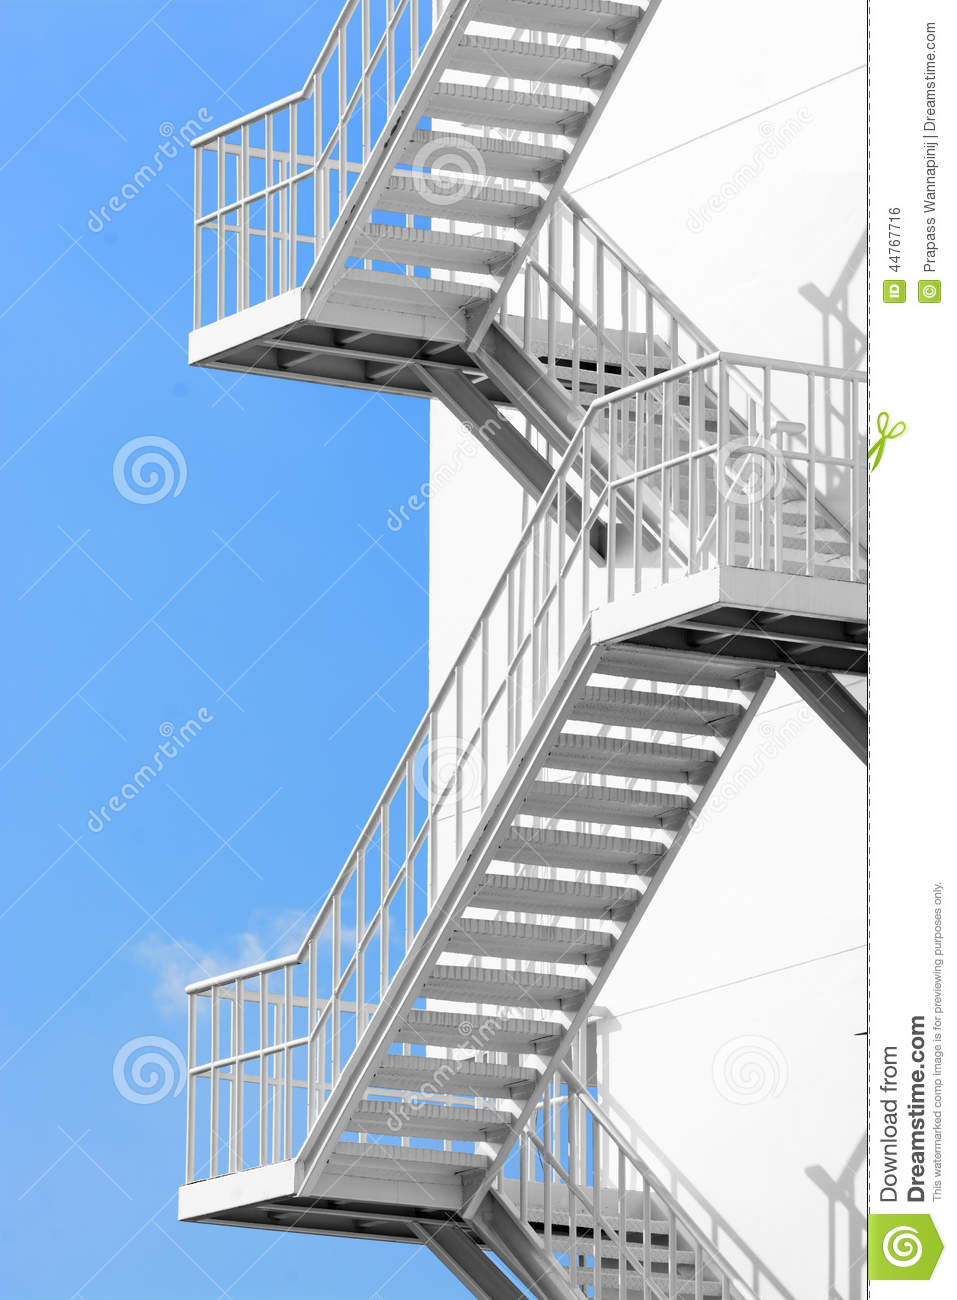 Outdoor White Steel Stair Stock Photo Image 44767716